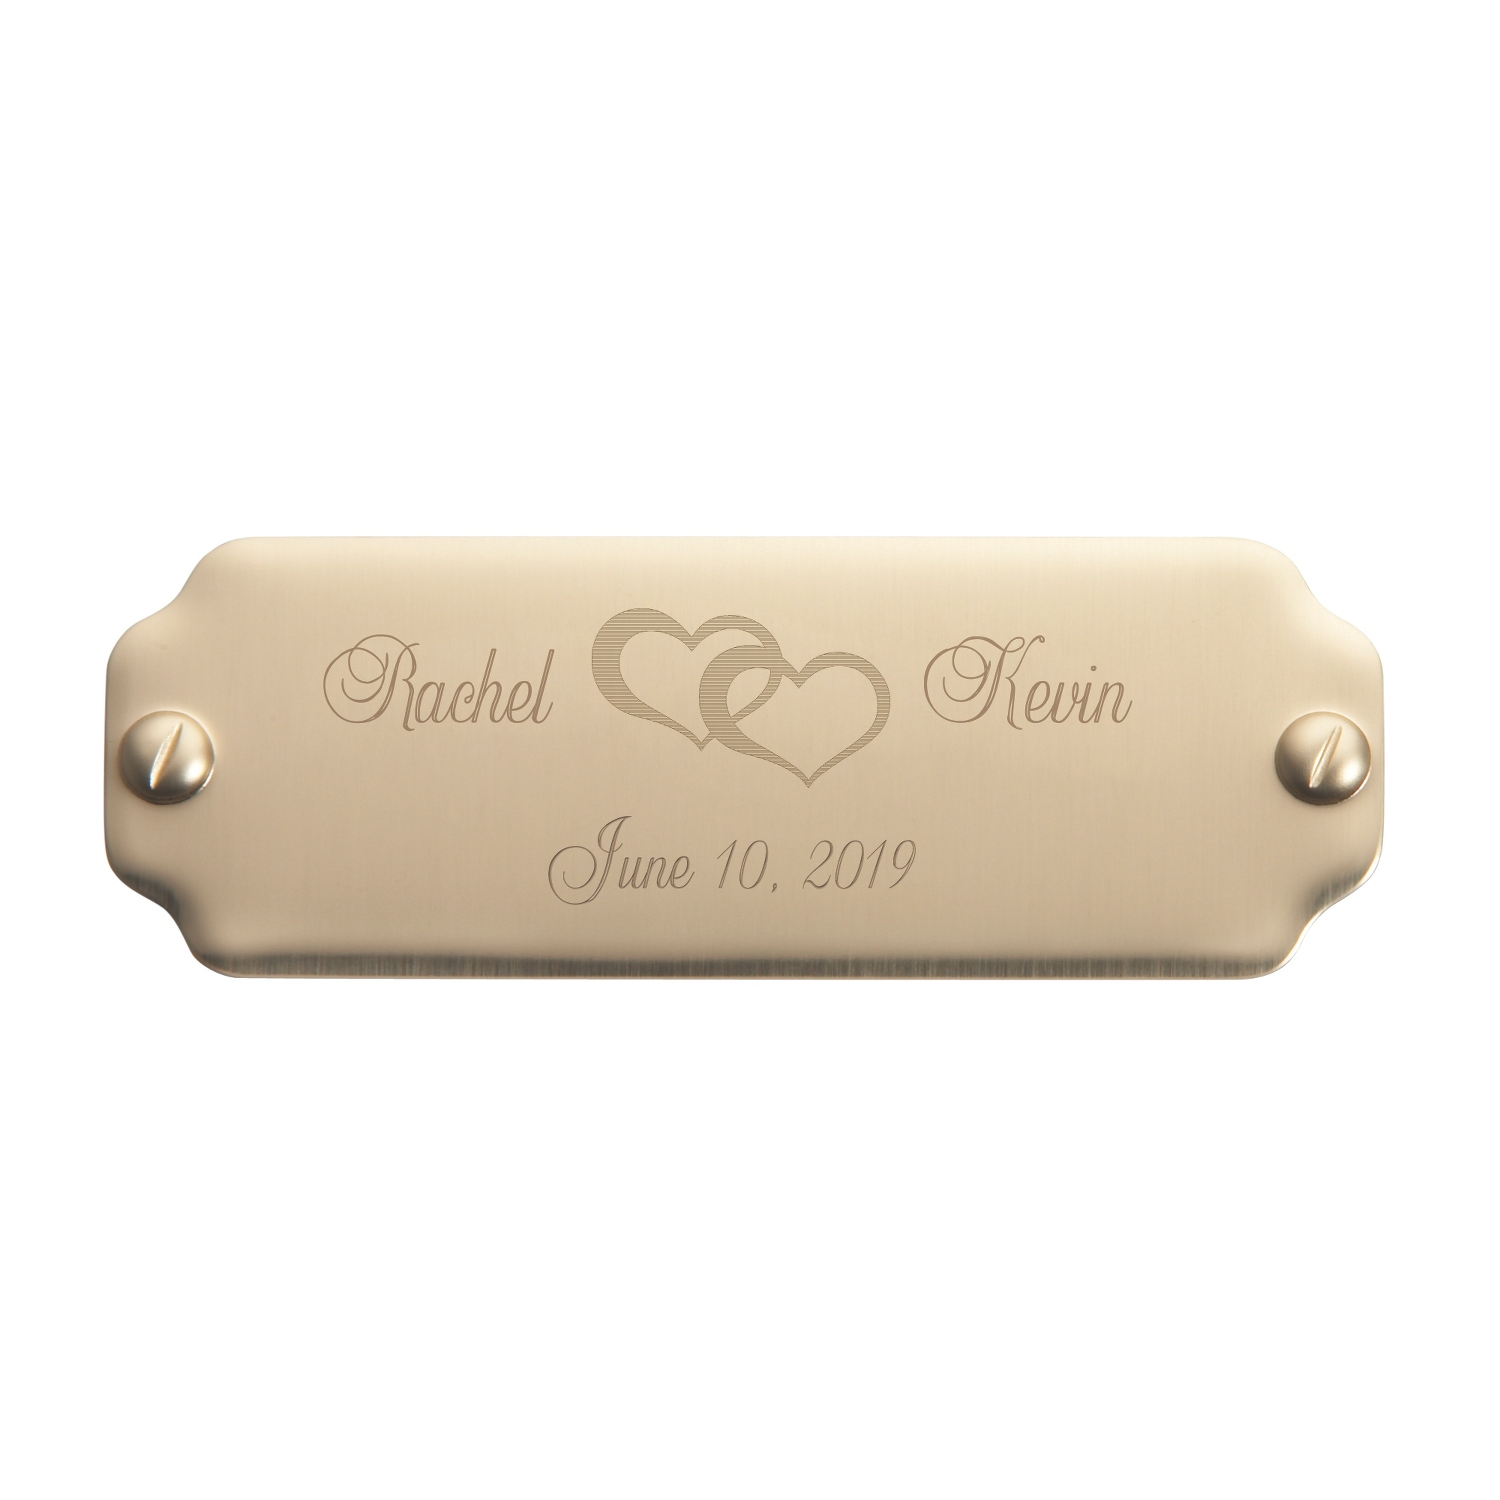 7/8 x 2 1/2 Name Plate with Imitation Screw Design